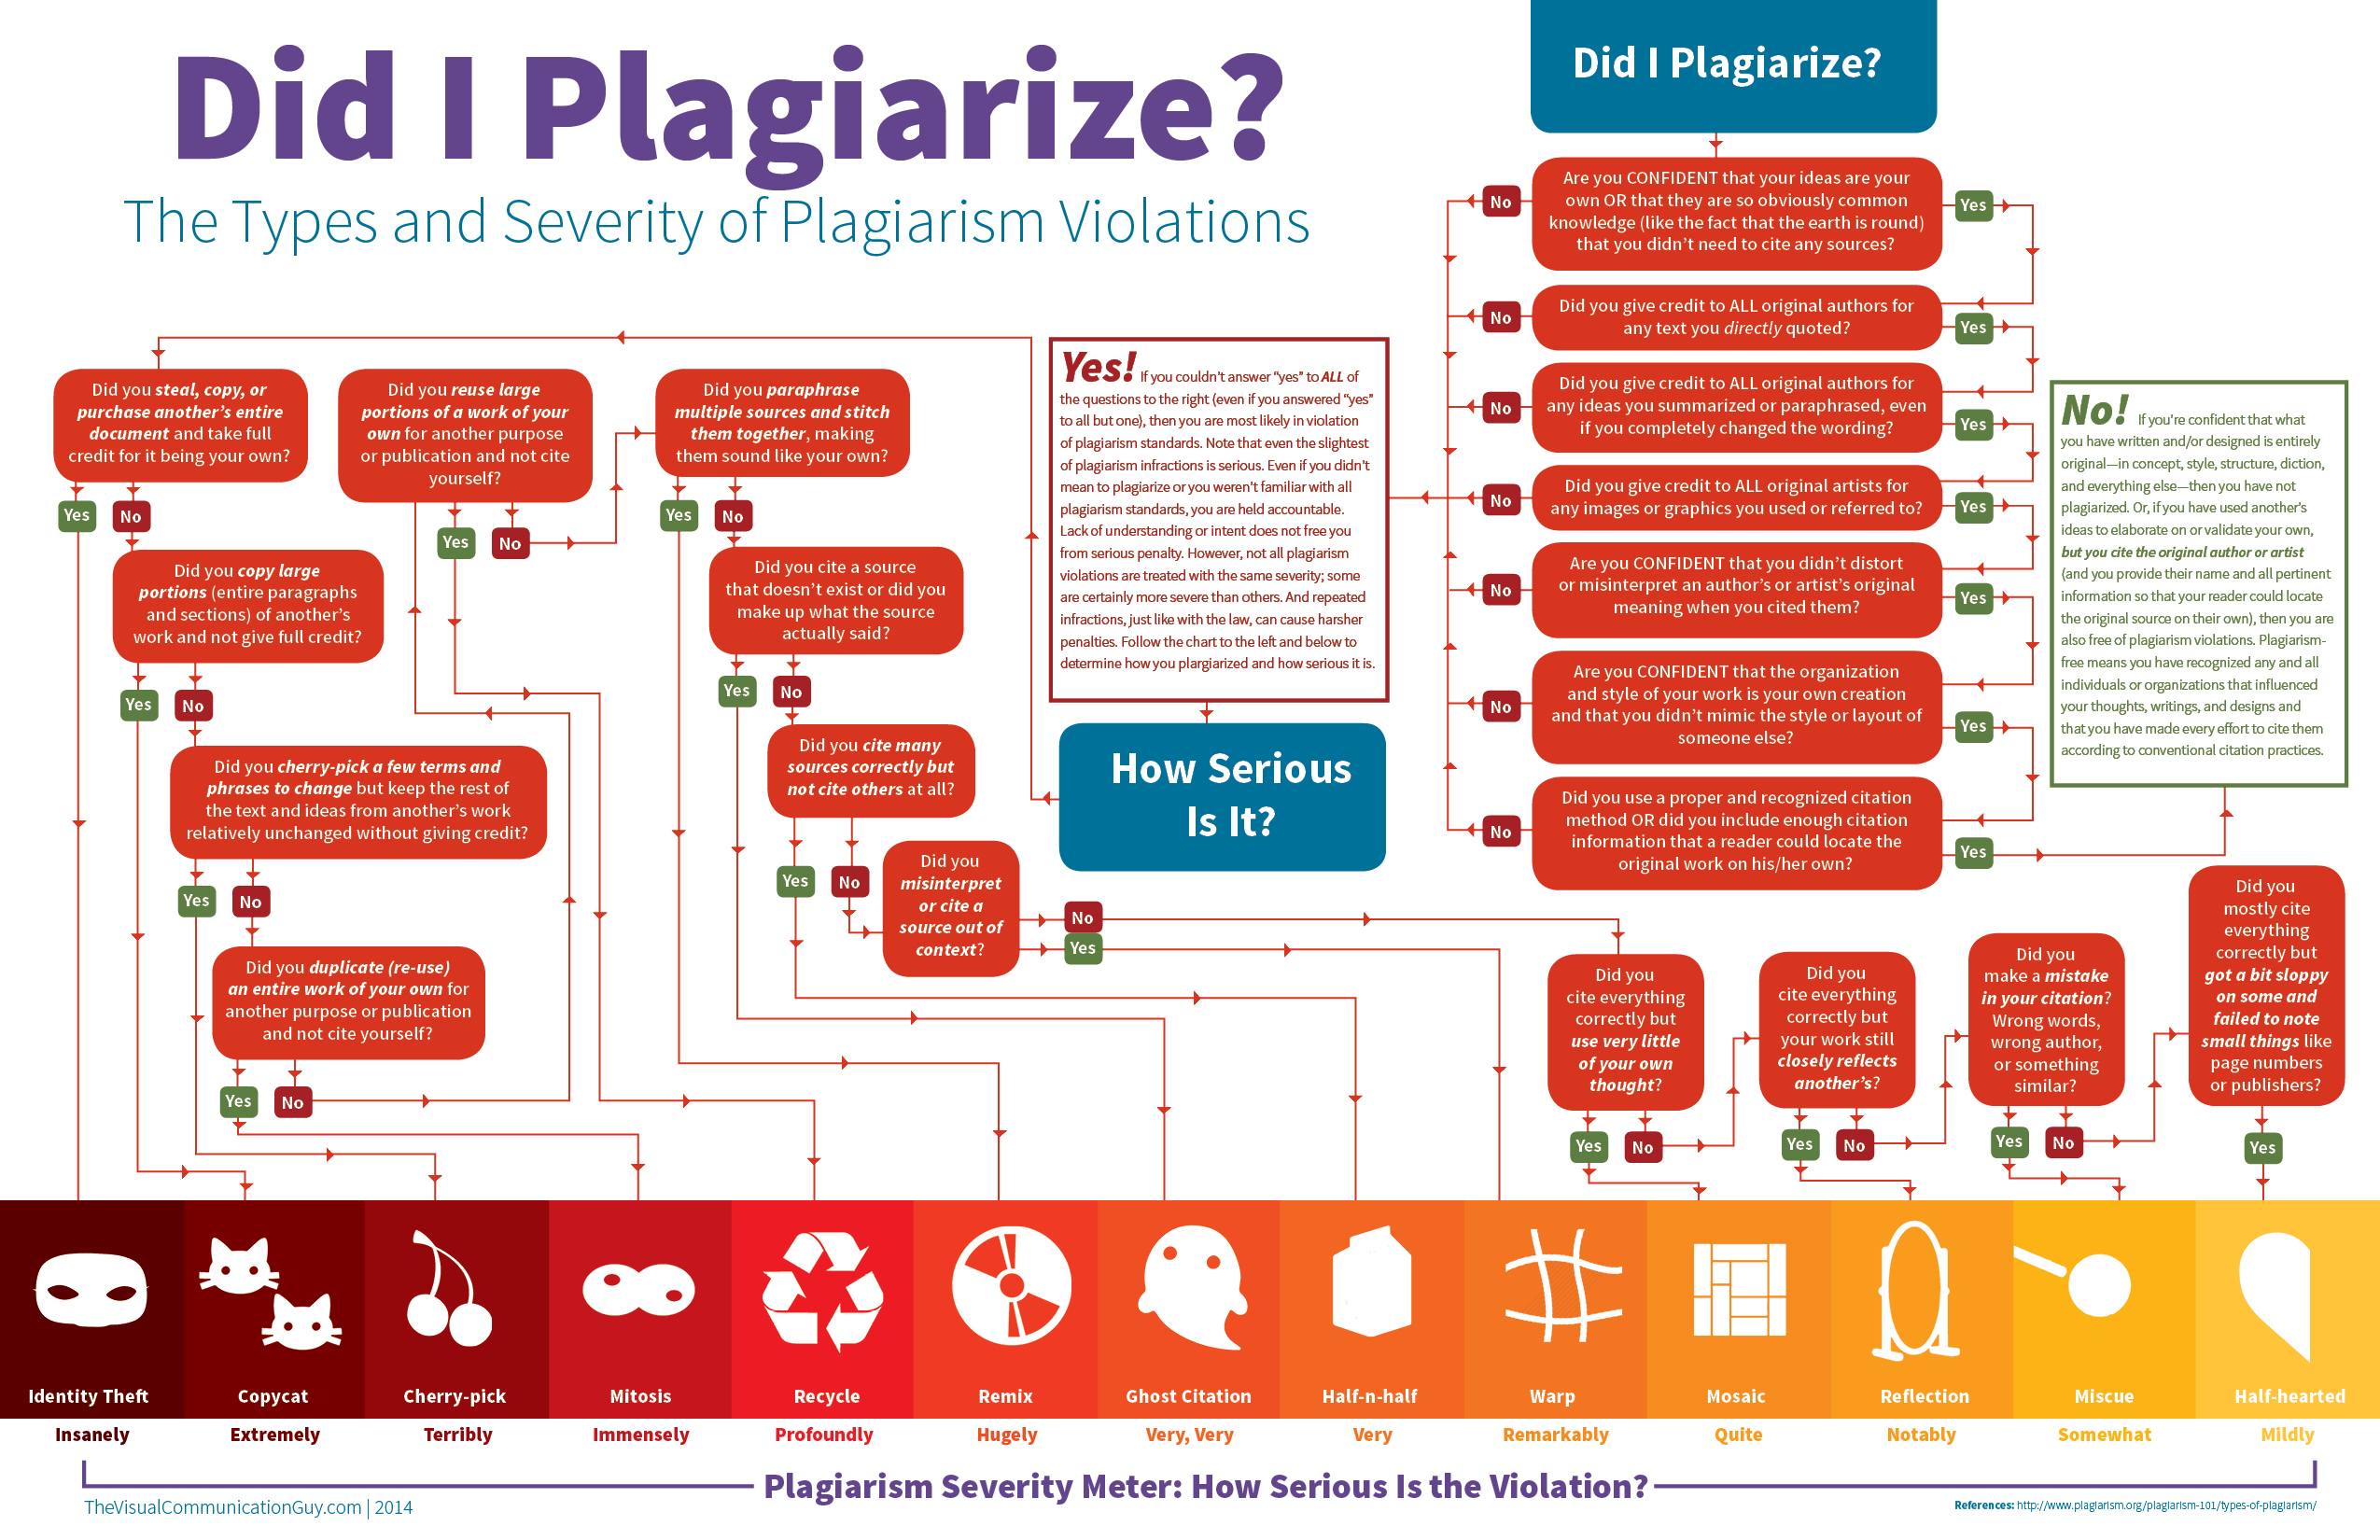 terminology is it plagiarism to reference a fictitious source plagiarism flowchart thevisualcommunicationguy com wp content uploads 2014 09 infographic did i plagiarize1 jpg